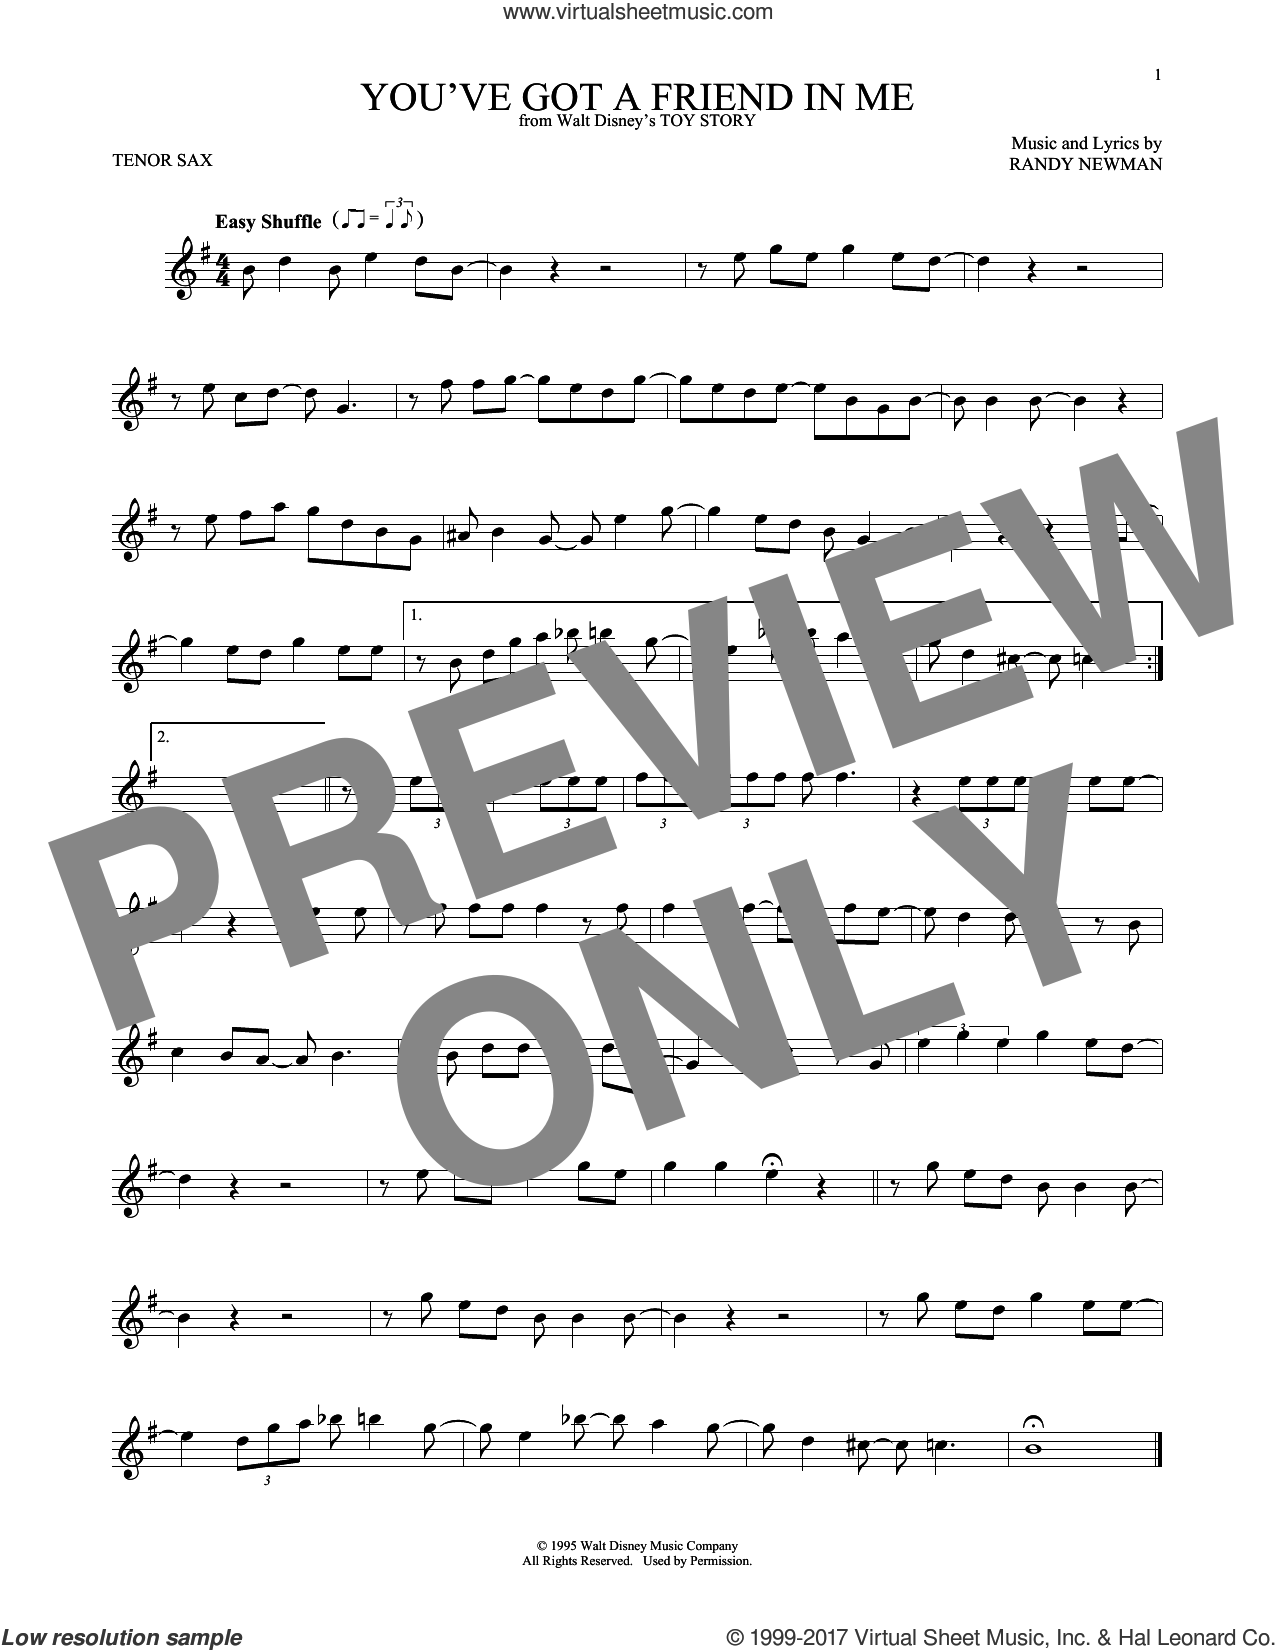 You've Got A Friend In Me sheet music for tenor saxophone solo by Randy Newman, intermediate skill level